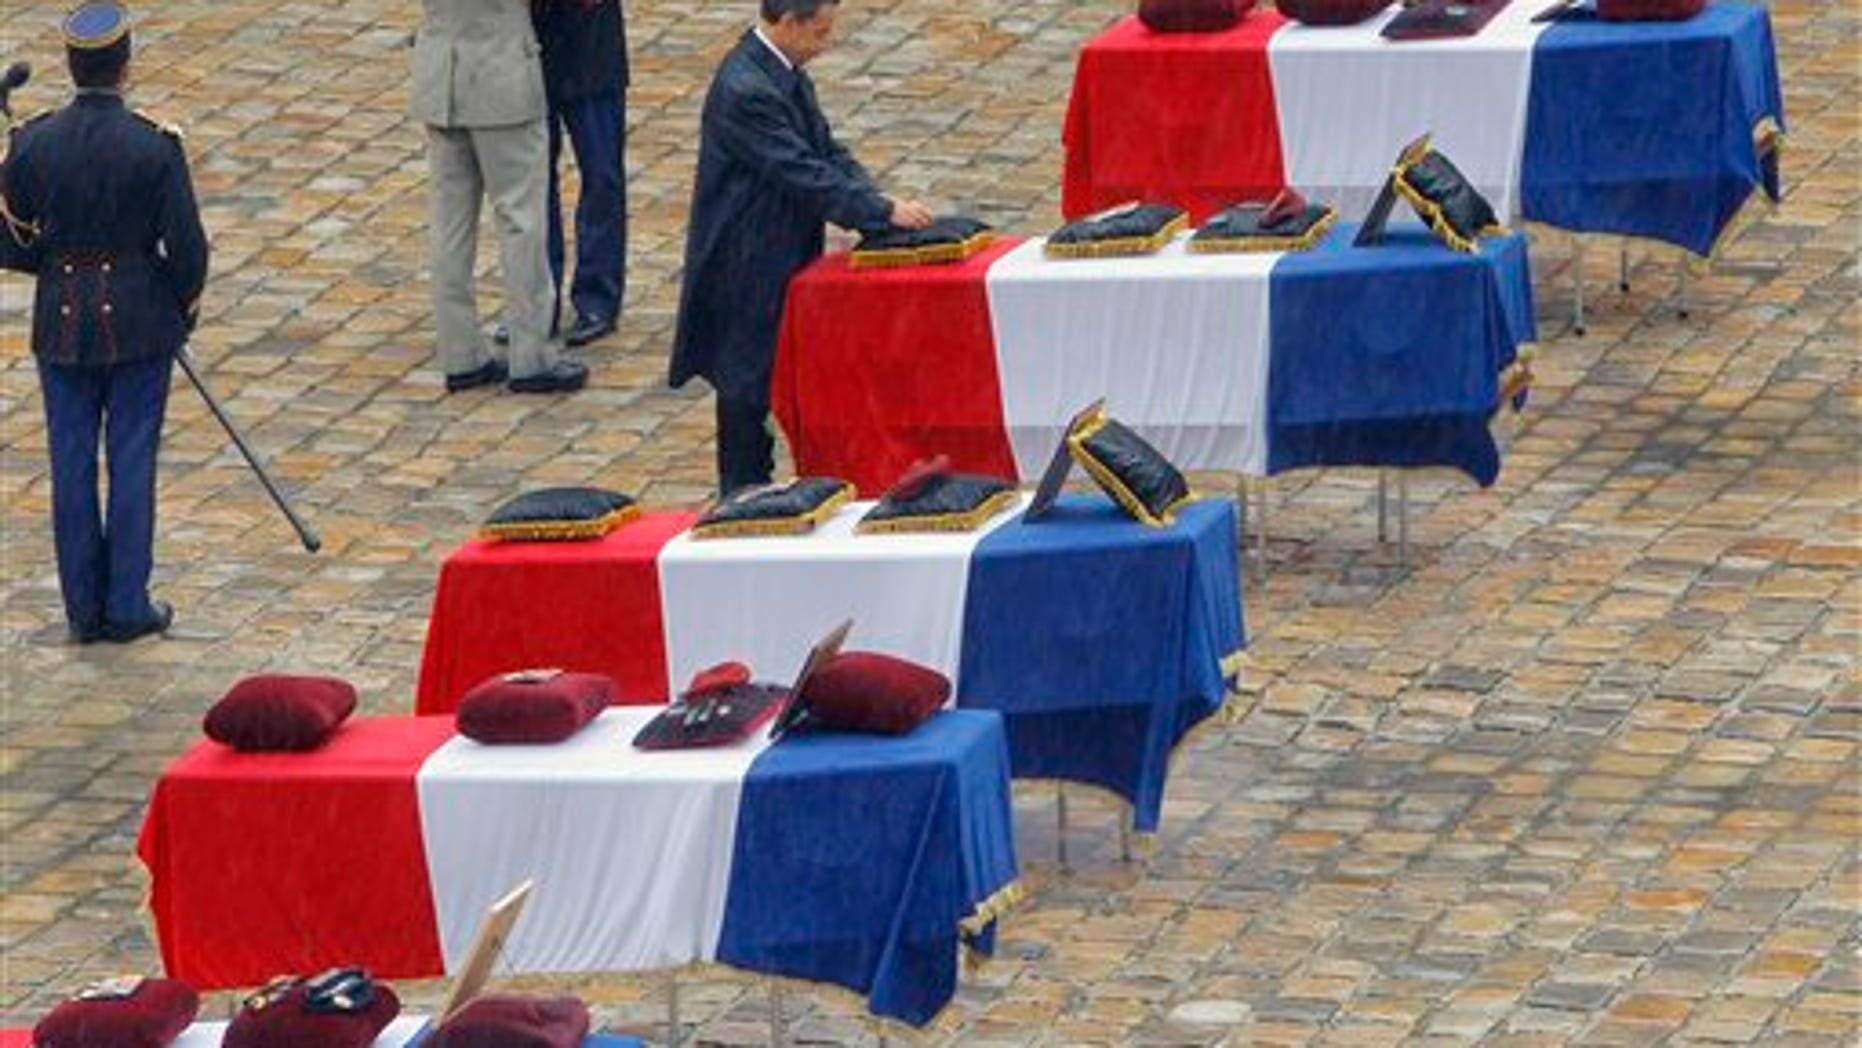 July 19: French President Nicolas Sarkozy pins the Legion of Honor medal on the flag-draped coffins lined up outside the Invalides church, as tribute is paid by France to the seven French soldiers killed last week in Afghanistan.